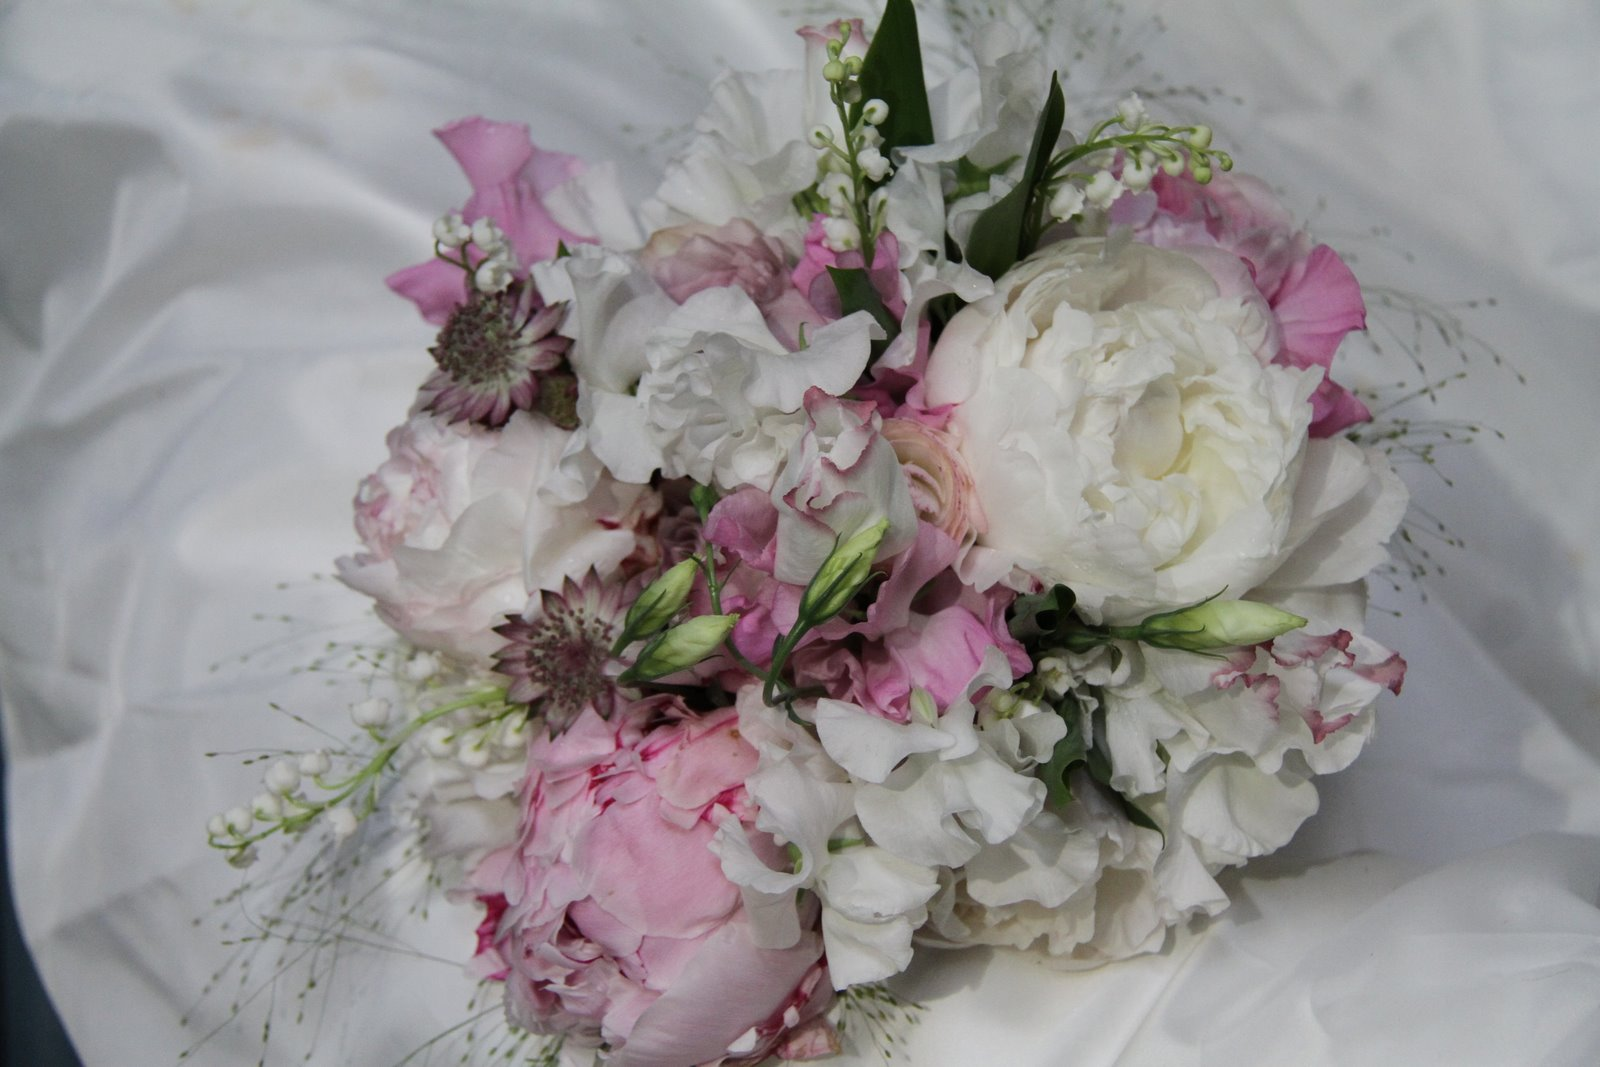 The Flower Magician: Sweet Peas, Peonies And Lily Of The